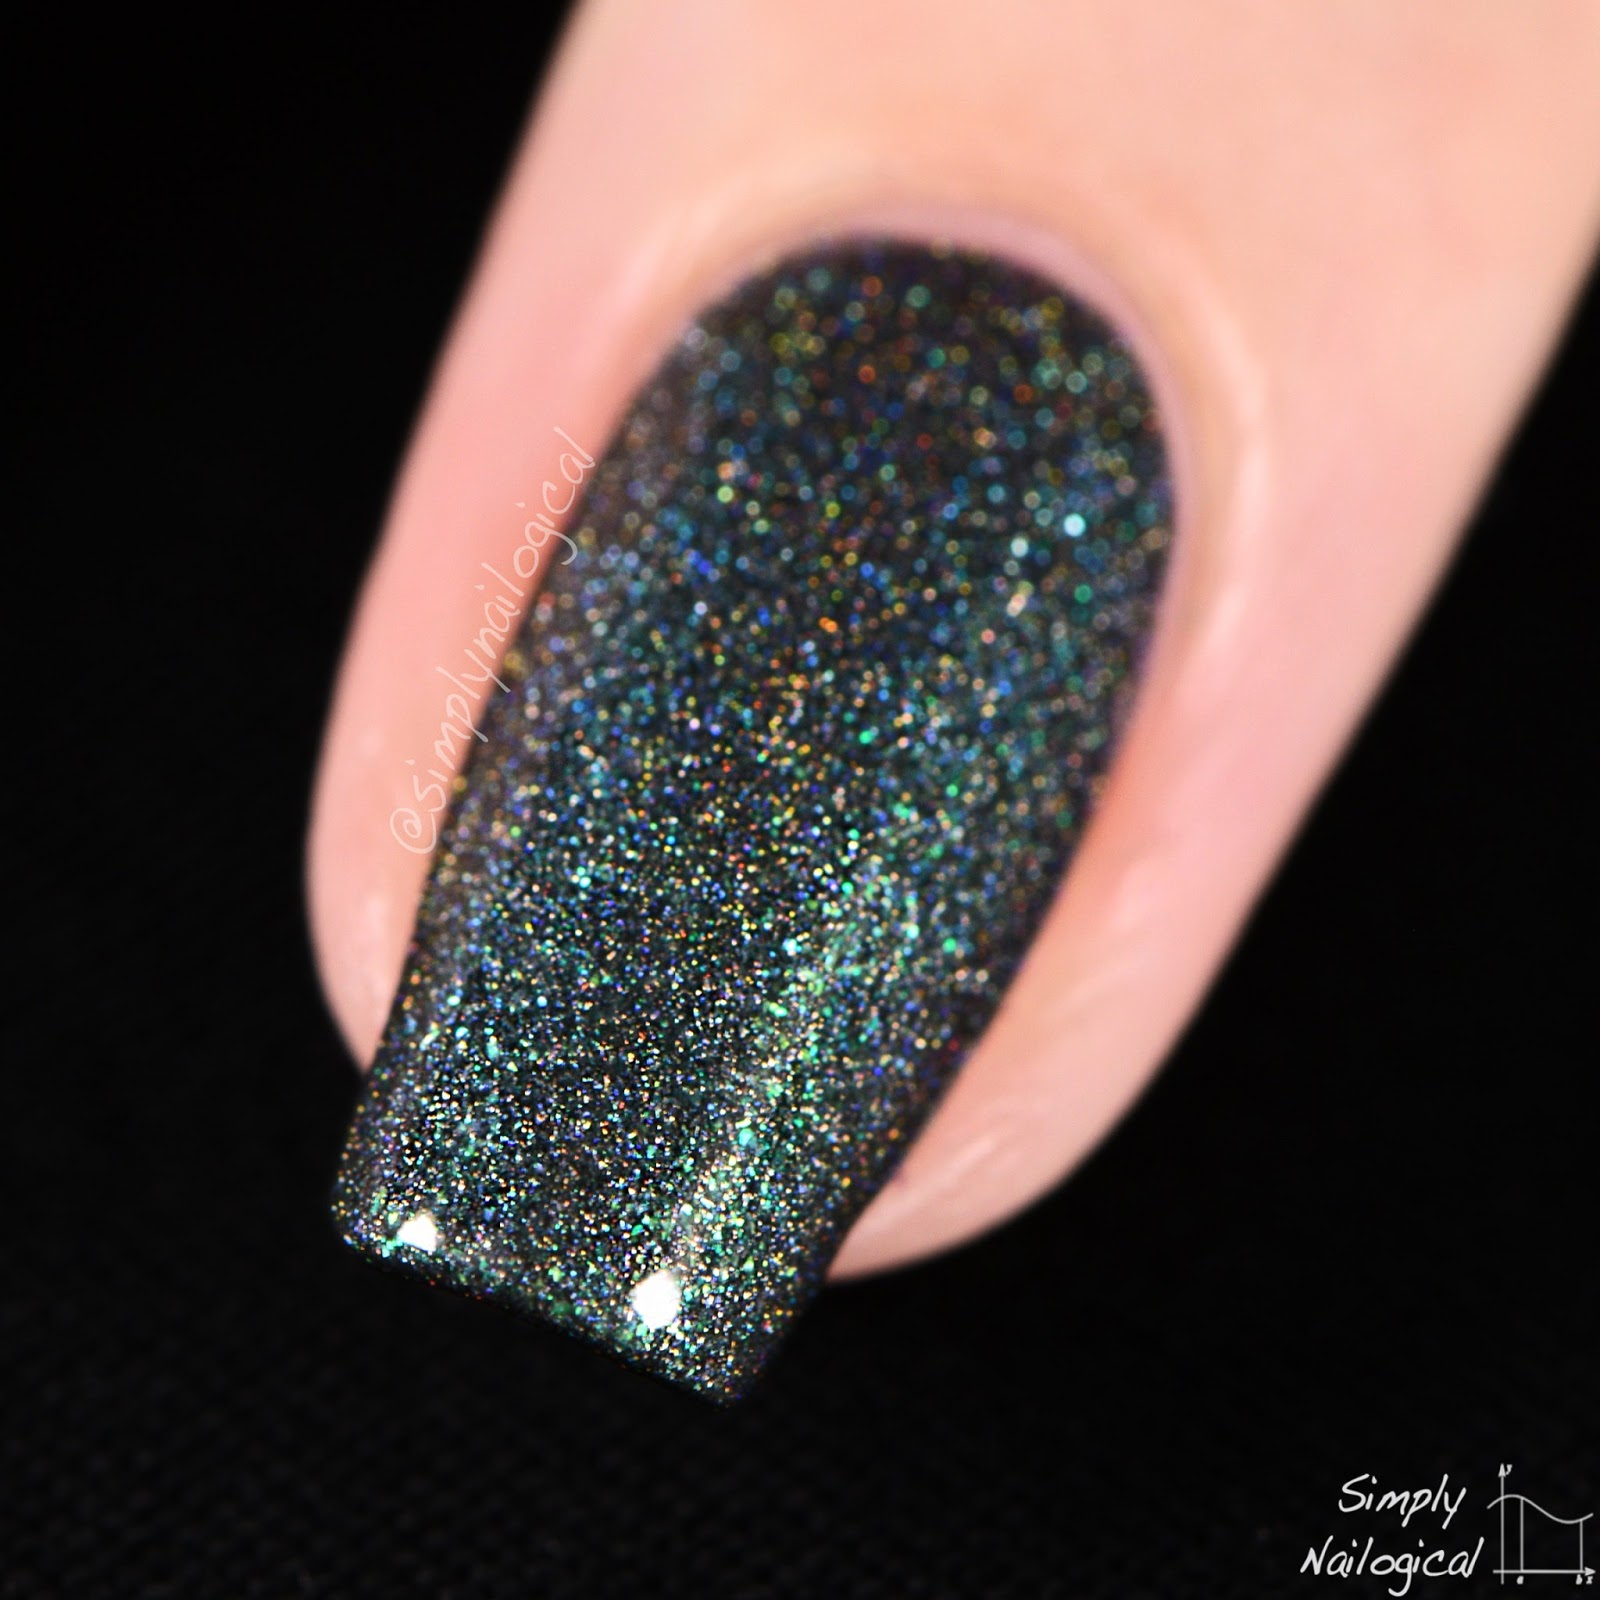 Simply Nailogical: Powder Perfect: Holos from the Hardwicke collection